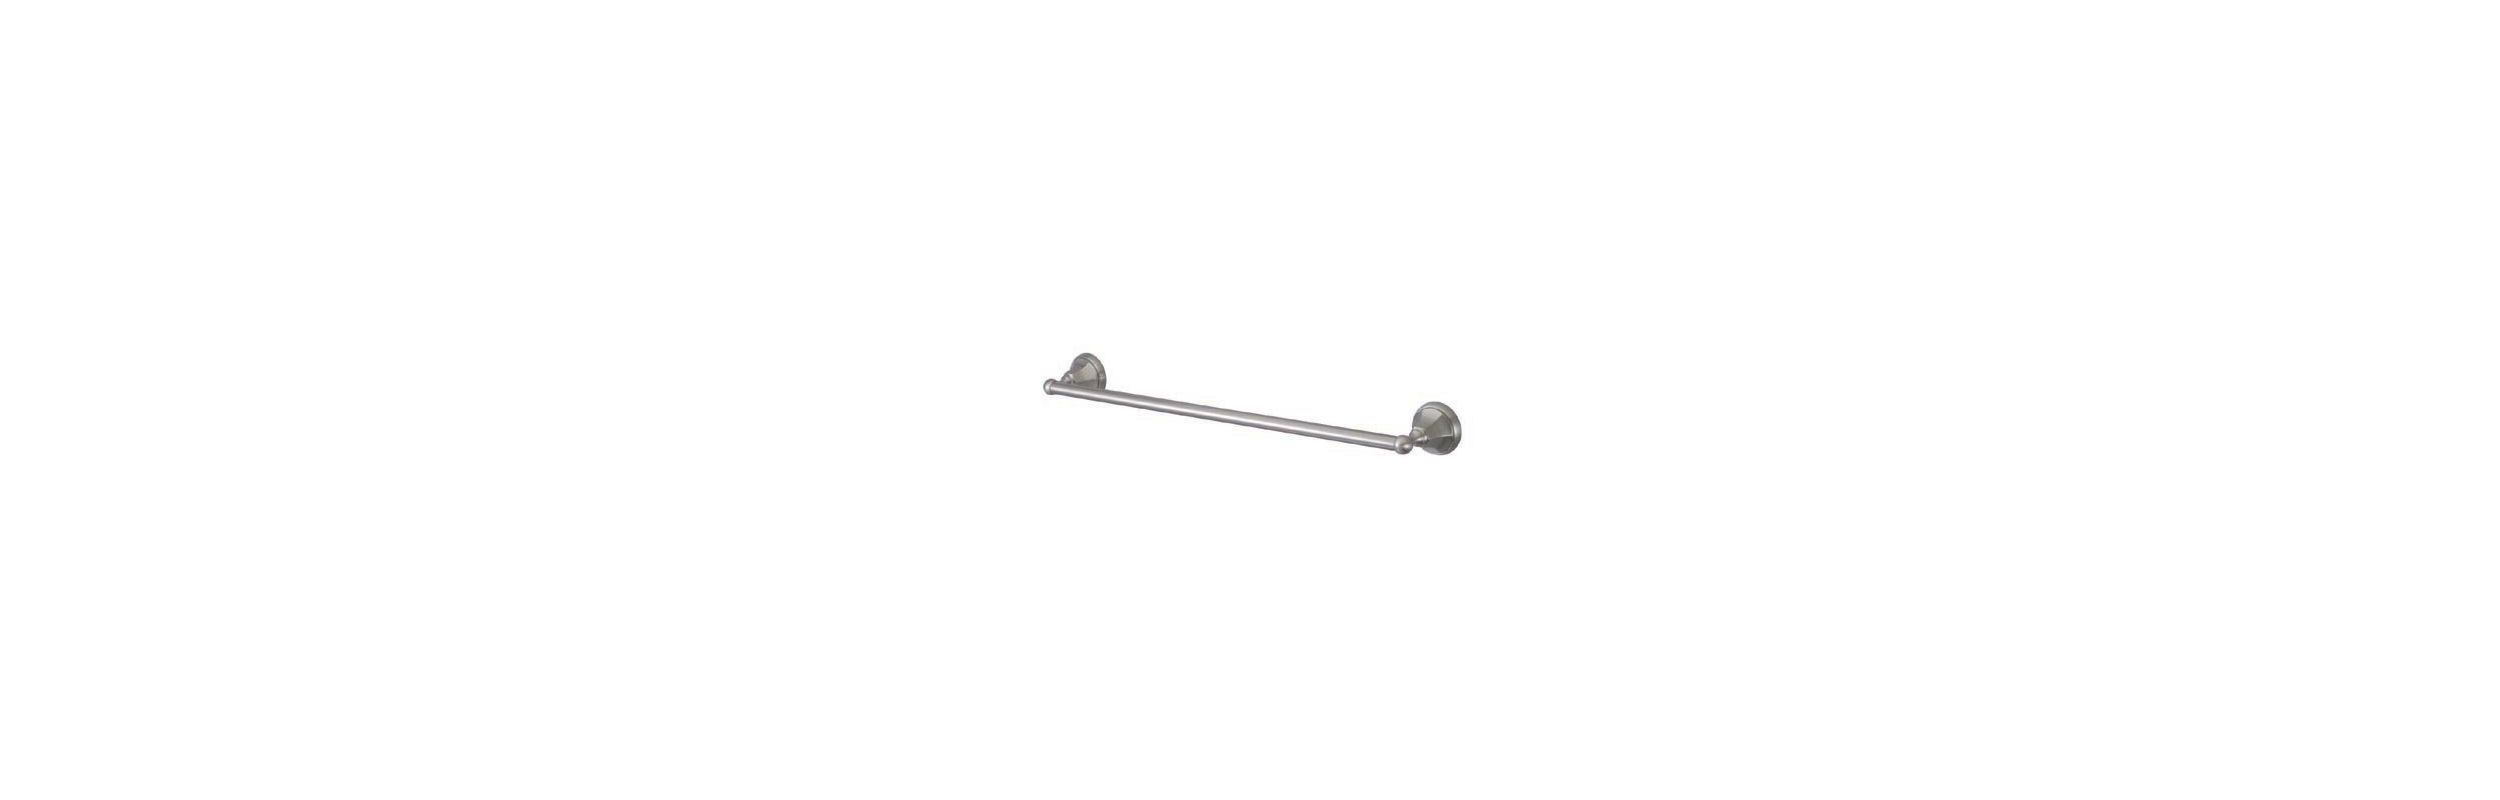 Elements of design eba4811sn satin nickel 24 quot towel bar from the new